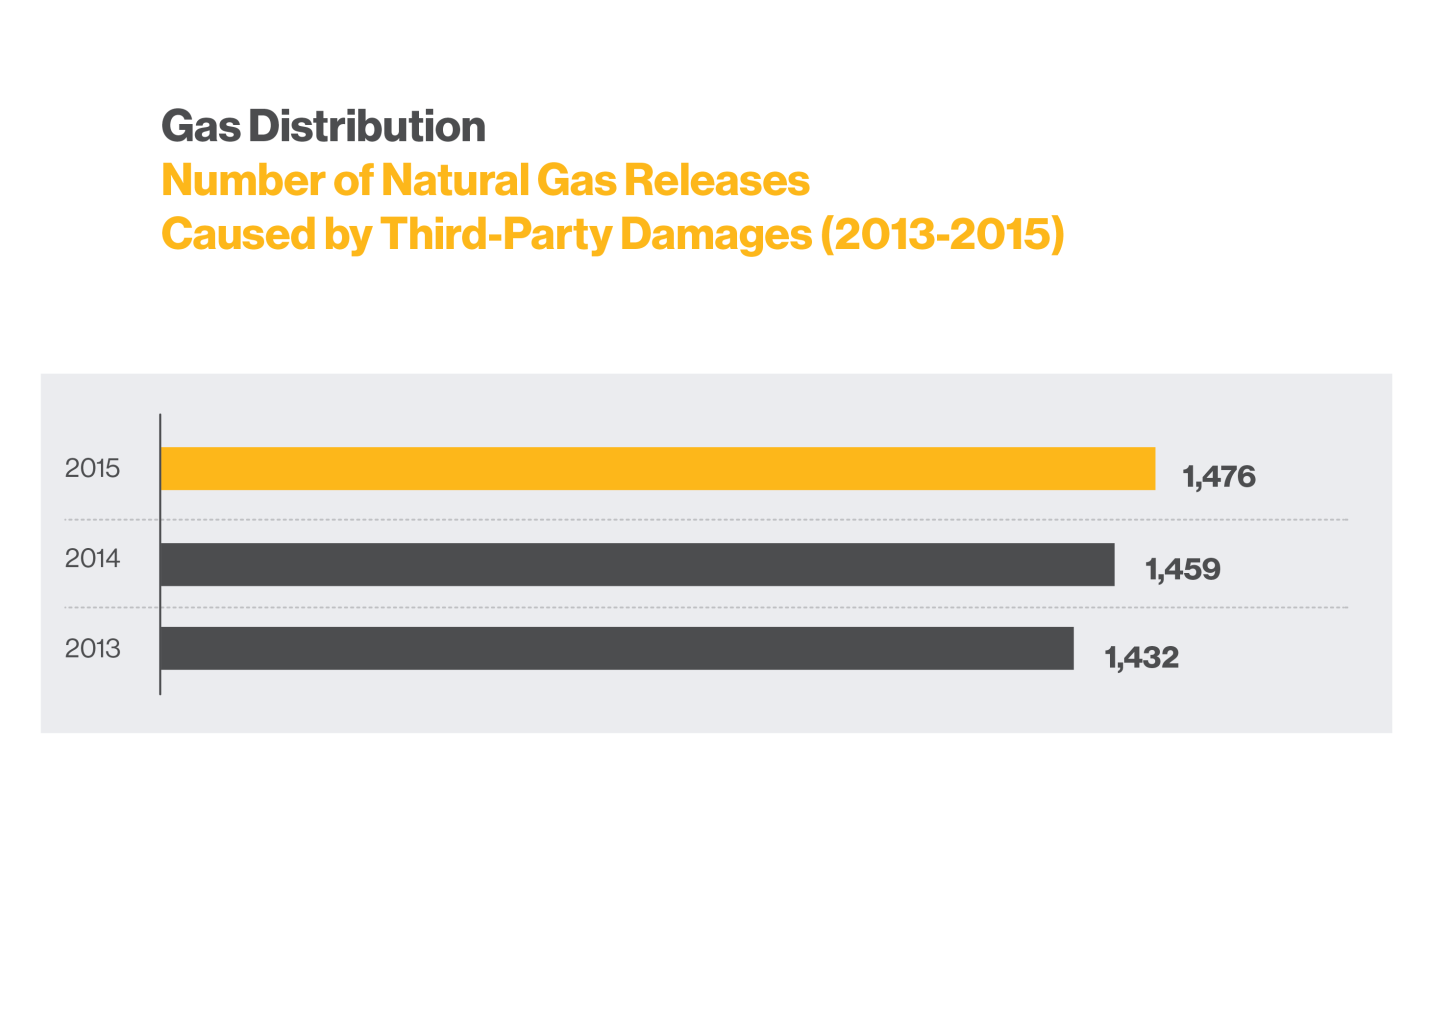 gd_Number_of_Natural_Gas_Releases_3rd_Party_Damages_2013-2015